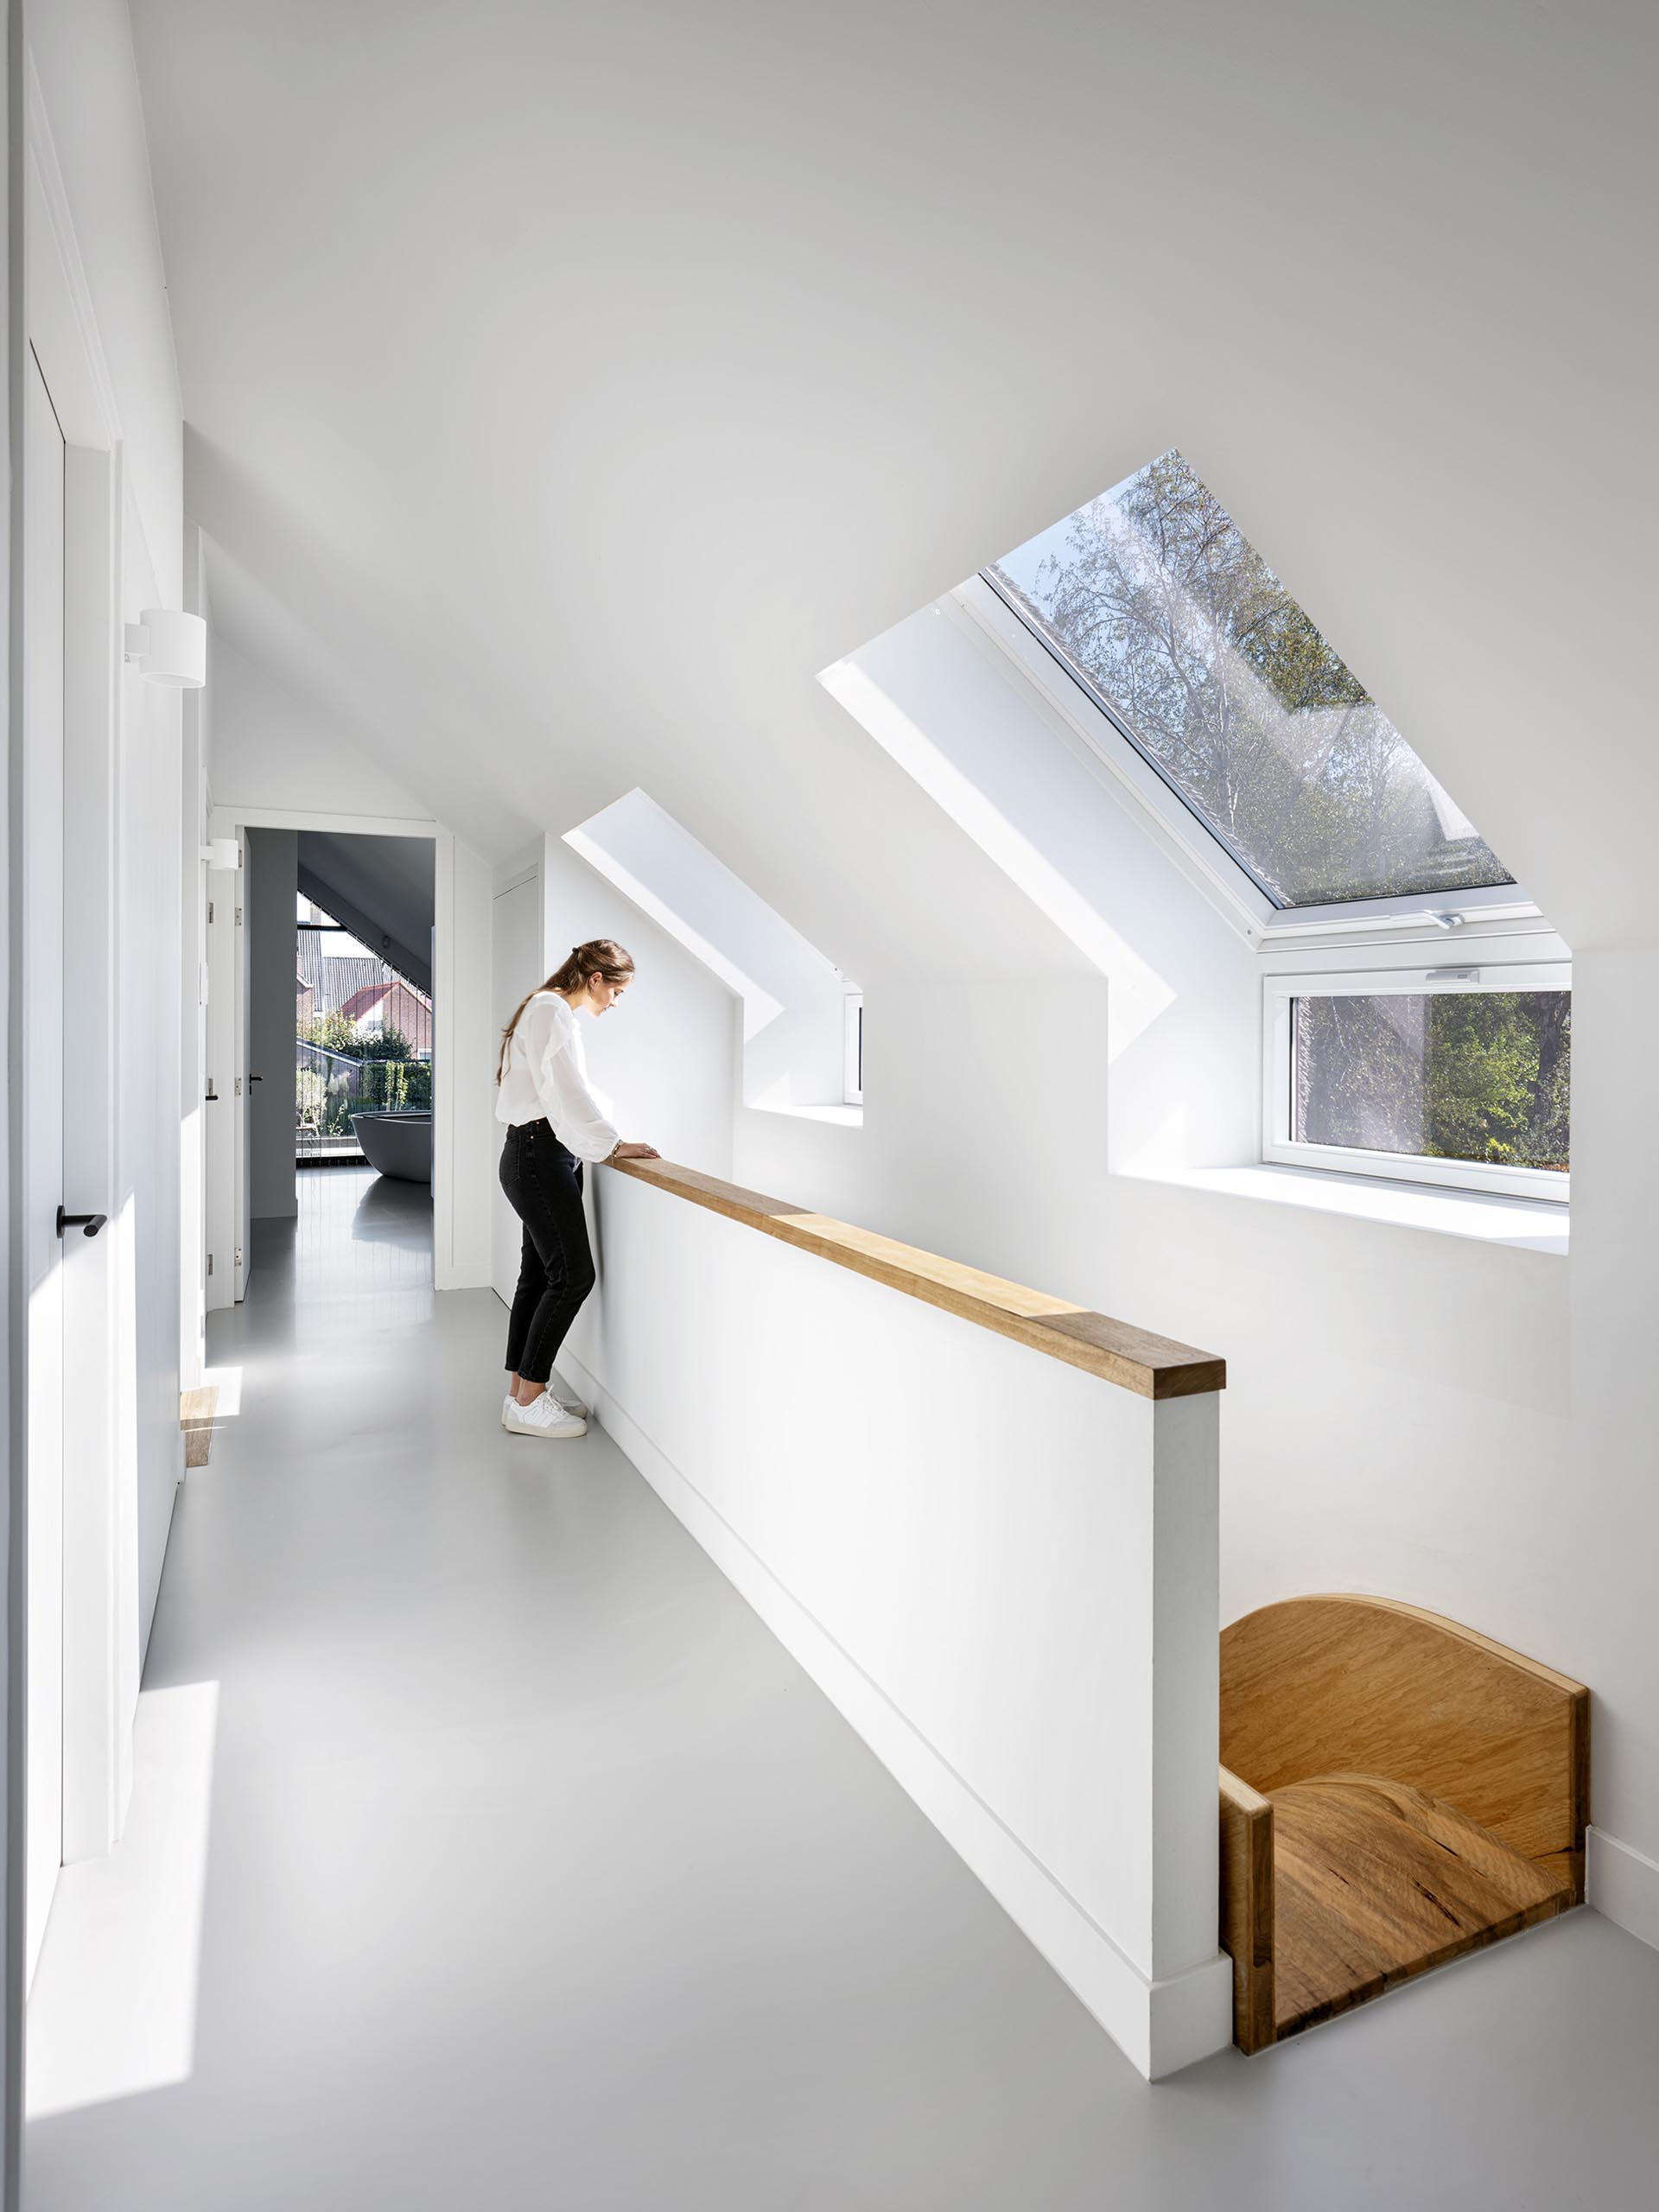 A modern house with an open hallway that connects to the bedrooms and shows the top of an indoor wood slide.